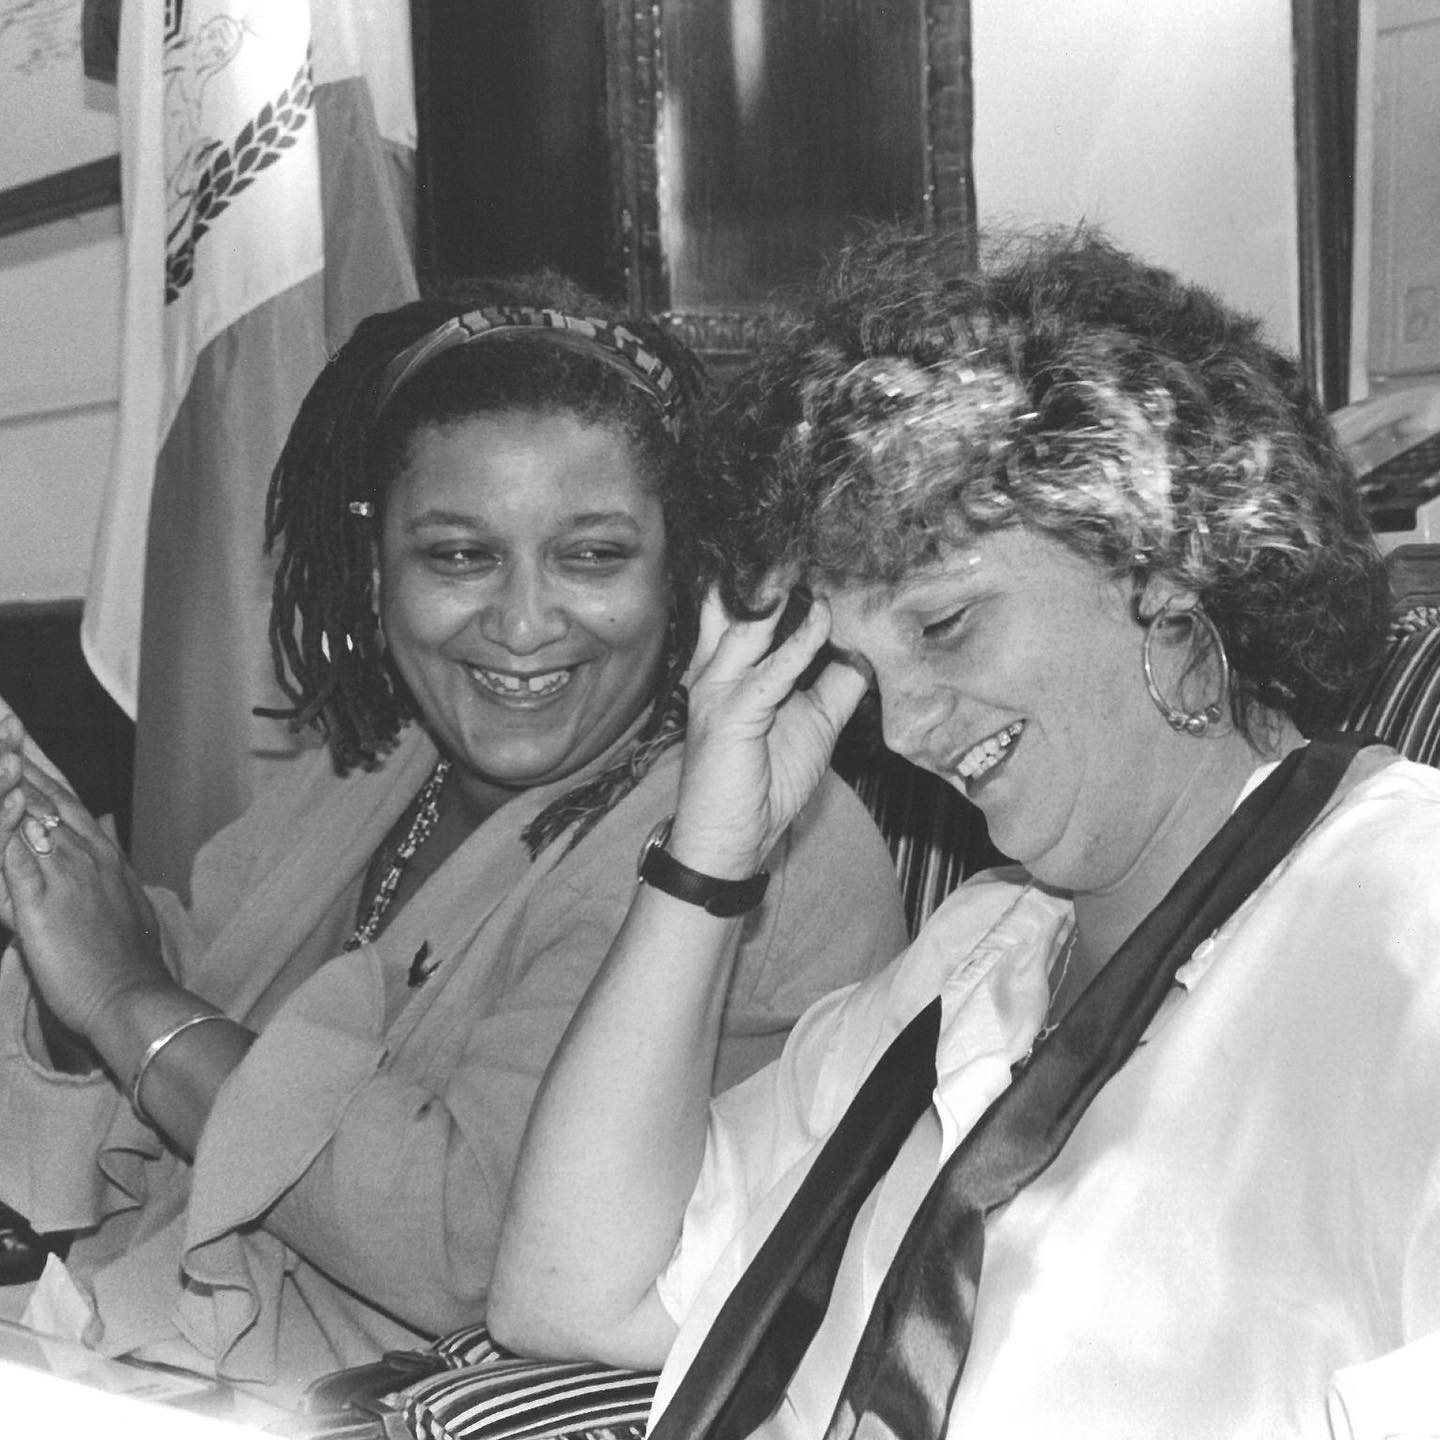 "Pictured here are Jewelle Gomez (left) and Joan Nestle (right), two icons of LGBT literature you should know about!  Gomez considers herself a possible foremother of Afrofuturism and is best known for her lesbian feminist novel The Gilda Stories. which reframes vampire mythology. In the 1970s she was a member of the lesbian feminist literary magazine Conditions. Gomez has published essays, poems, plays and short fiction, which have been included in over a hundred different anthologies. She was on the founding board of GLAAD in 1984, and later wrote extensively in favor of equal marriage rights. She is currently the Director of Grants and Community Initiatives for Horizons Foundation, and President of the San Francisco Public Library Commission  Nestle is a founder of the Lesbian Herstory Archives. This project, which grew out of her NYC apartment, aims to shift history towards inclusivity of women, lesbians, and Jews. She was involved in the Civil Rights movement of the 1960s, and devoted her focus to gay liberation after the Stonewall Riots. Through the '80s and '90s she published two books of collected writings and edited various anthologies and collections of LGBT voices. She is especially known for 1992 anthology ""The Persistent Desire: A Femme-Butch Reader"".  Both Gomez and Nestle are holders of Lambda Literary Awards, which are given to celebrate American LGBT literature. The two are seen here at an awards ceremony at NYC Comptroller Liz Holtzman's office on June 26, 1991 © Fred W. McDarrah/MUUS Collection  #womenshistory #womenshistorymonth #blackhistory #photography #documentaryphotography #filmphotography #film #filmisnotdead #photoftheday #blackandwhitephotography #muuscollection #LGBThistory #gayhistory #womenshistory #archives #equalrights #civilrights #stonewall #lesbianhistory #GLAAD #herstory #literature #fredmcdarrah"